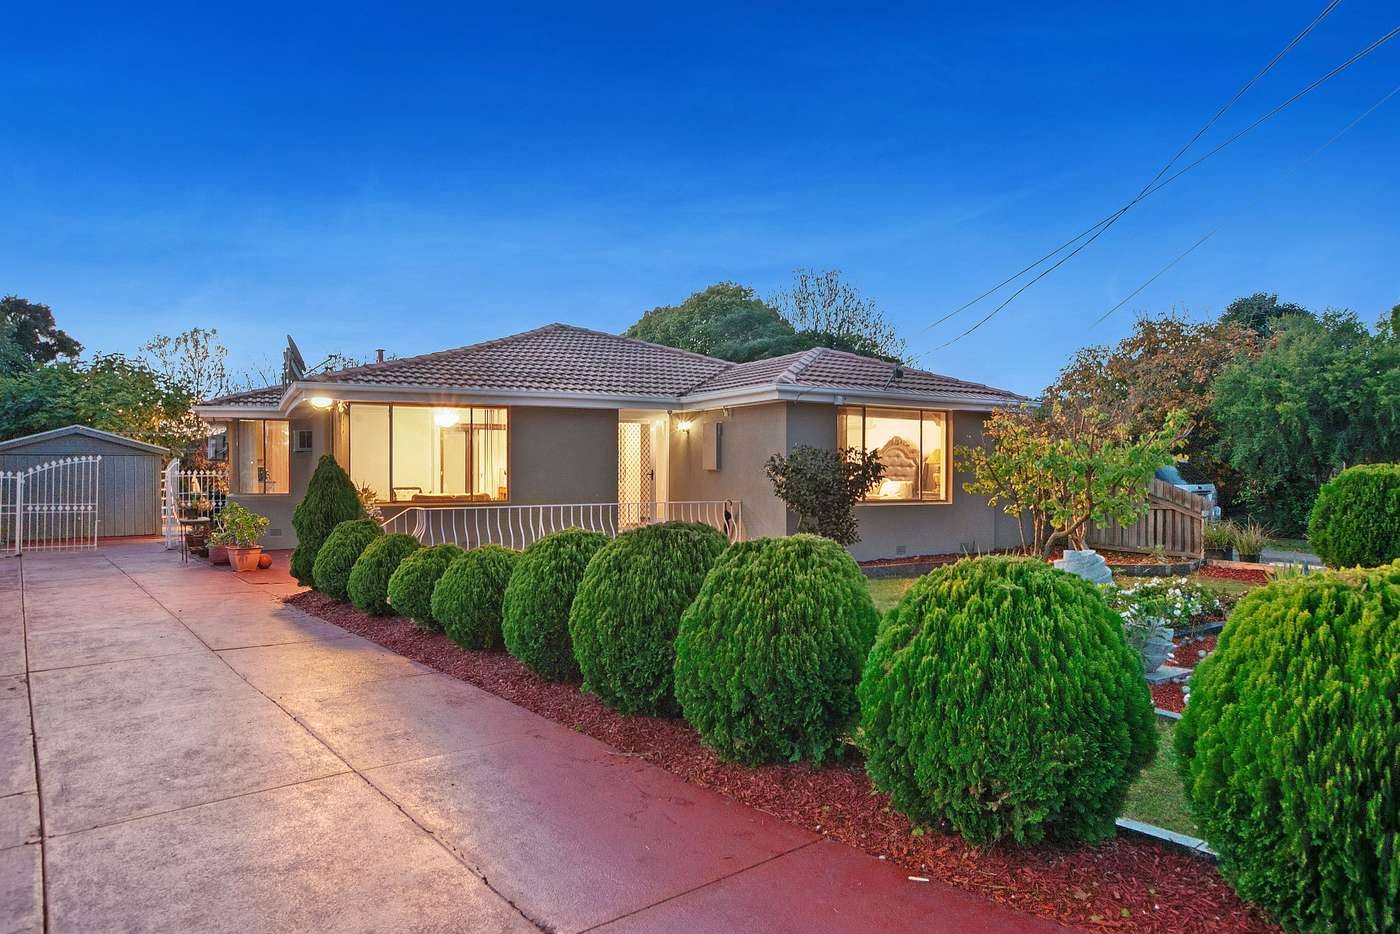 Main view of Homely house listing, 5 Walden Court, Bundoora VIC 3083